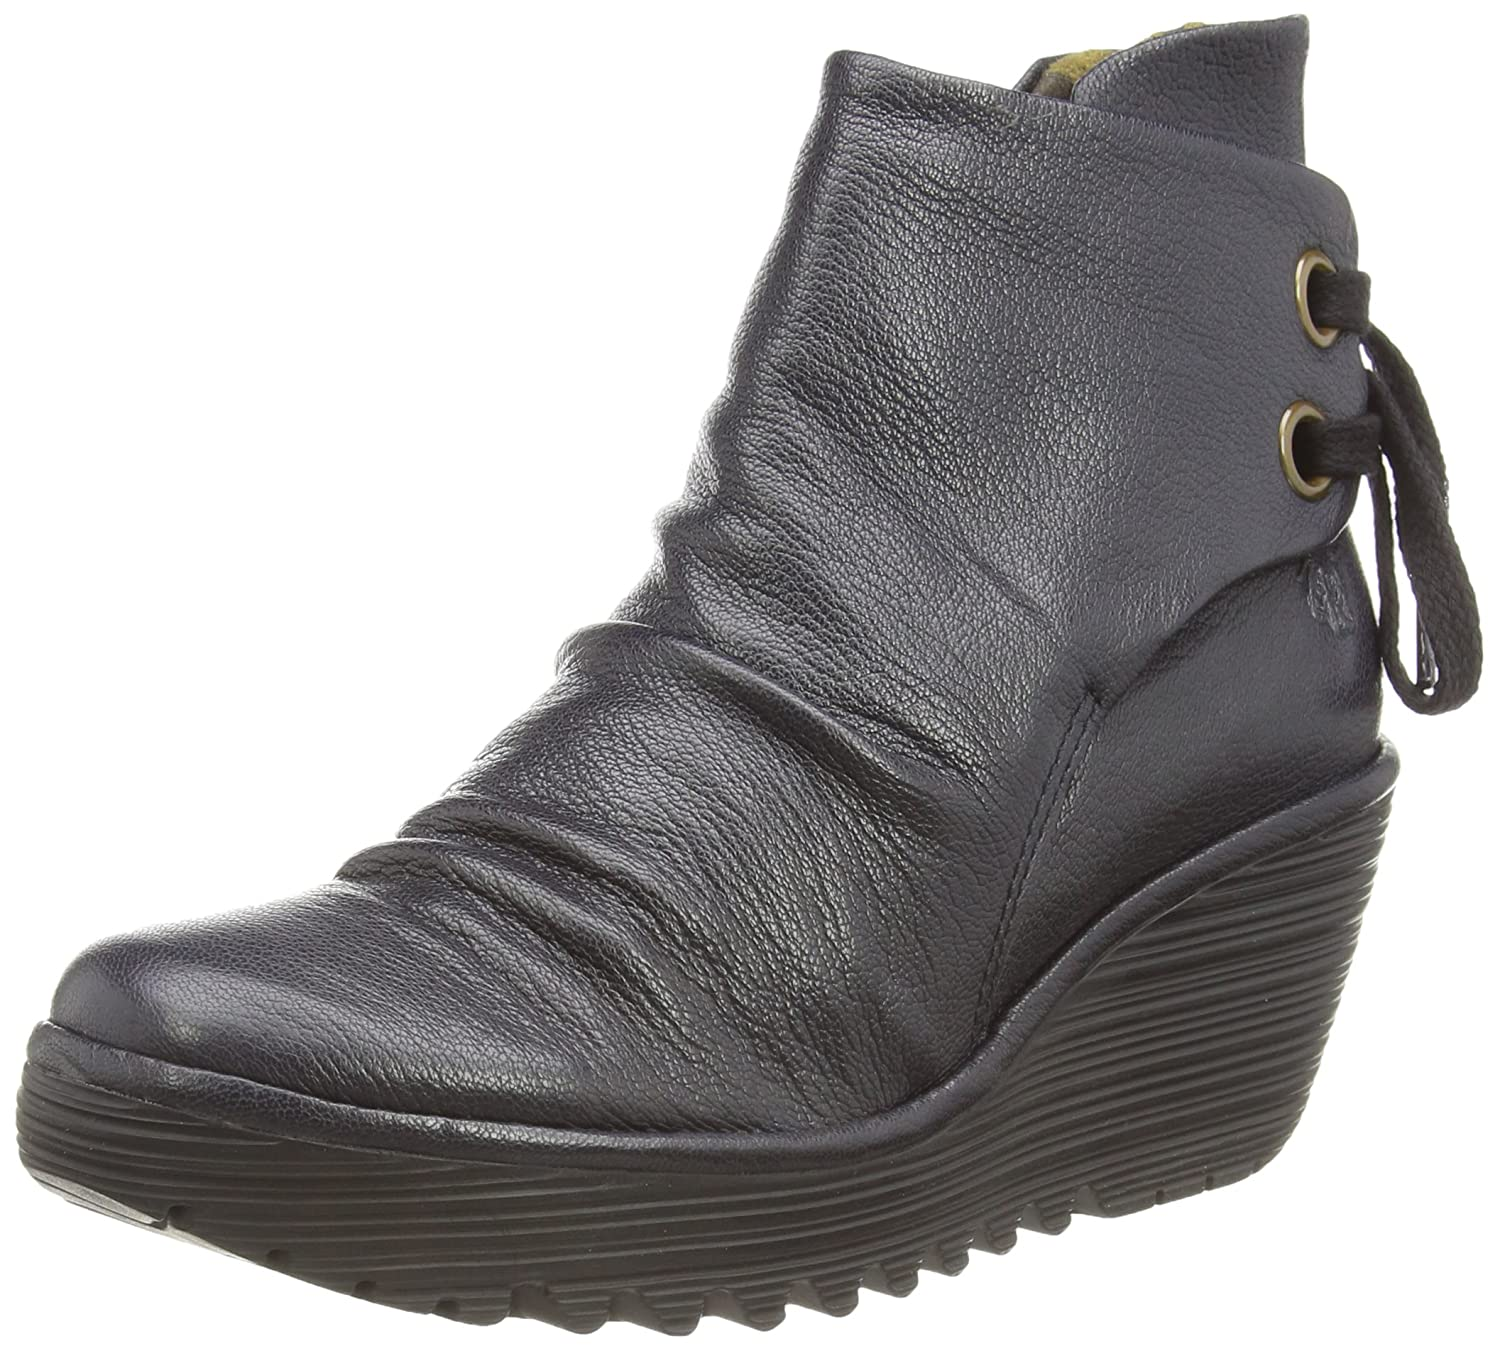 Fly London Womens Black Yama Mousse Boots